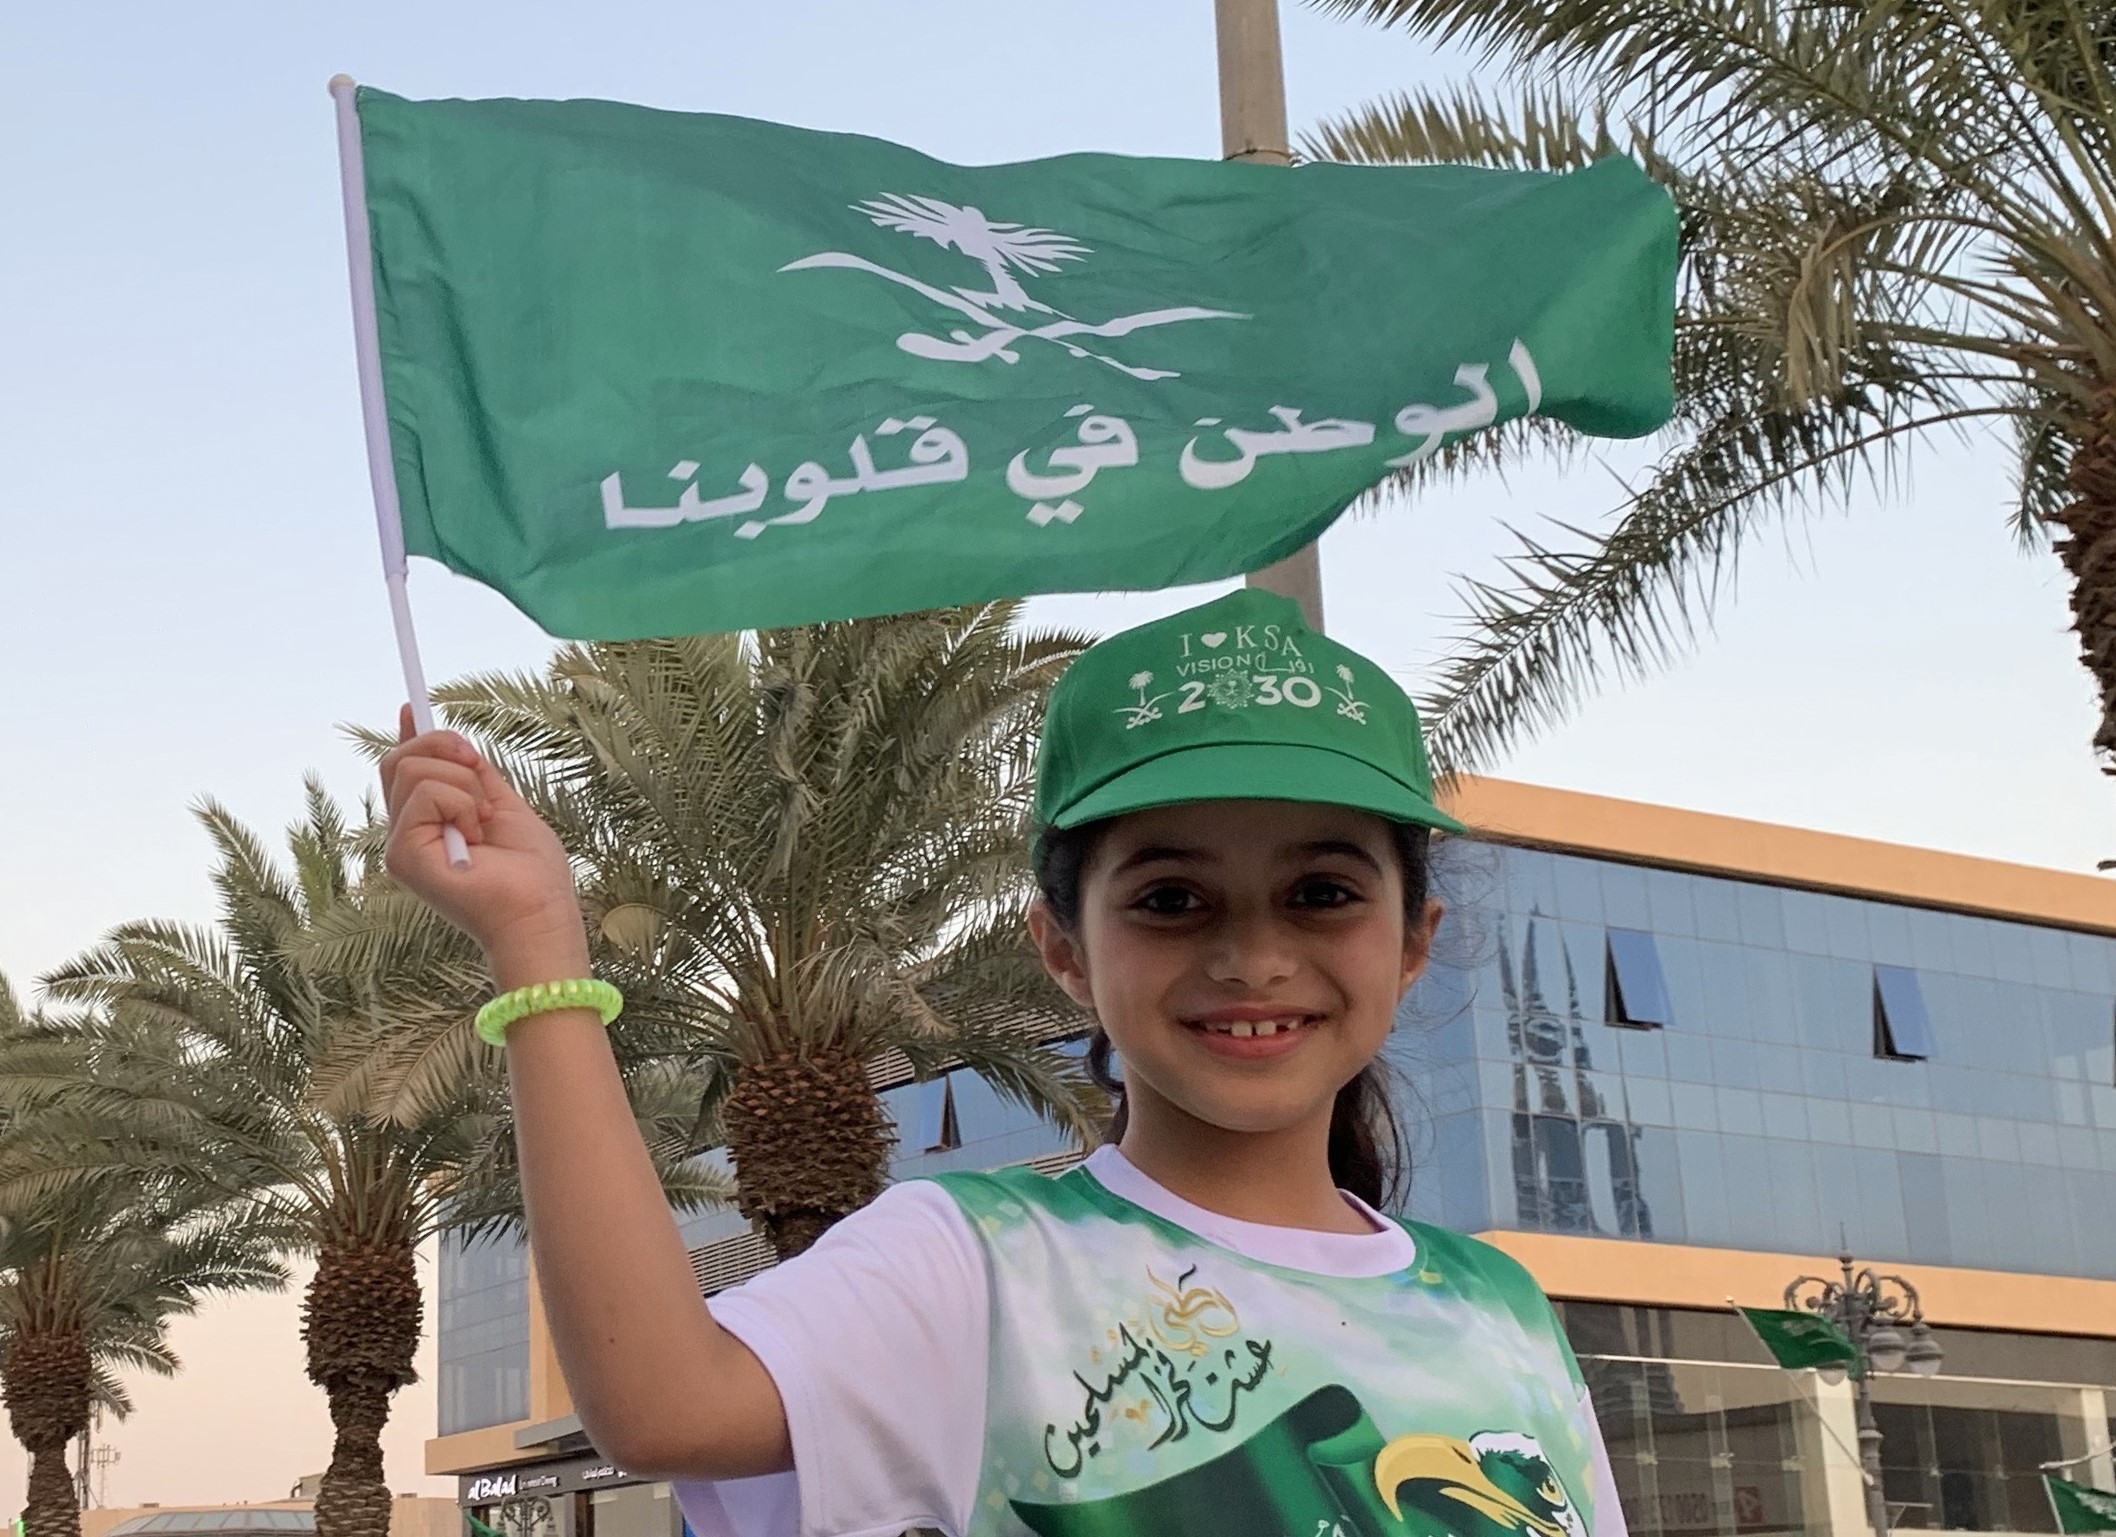 A girl waves a flag during celebrations in Riyadh marking Saudi Arabi's National Day on 23 September (AFP)